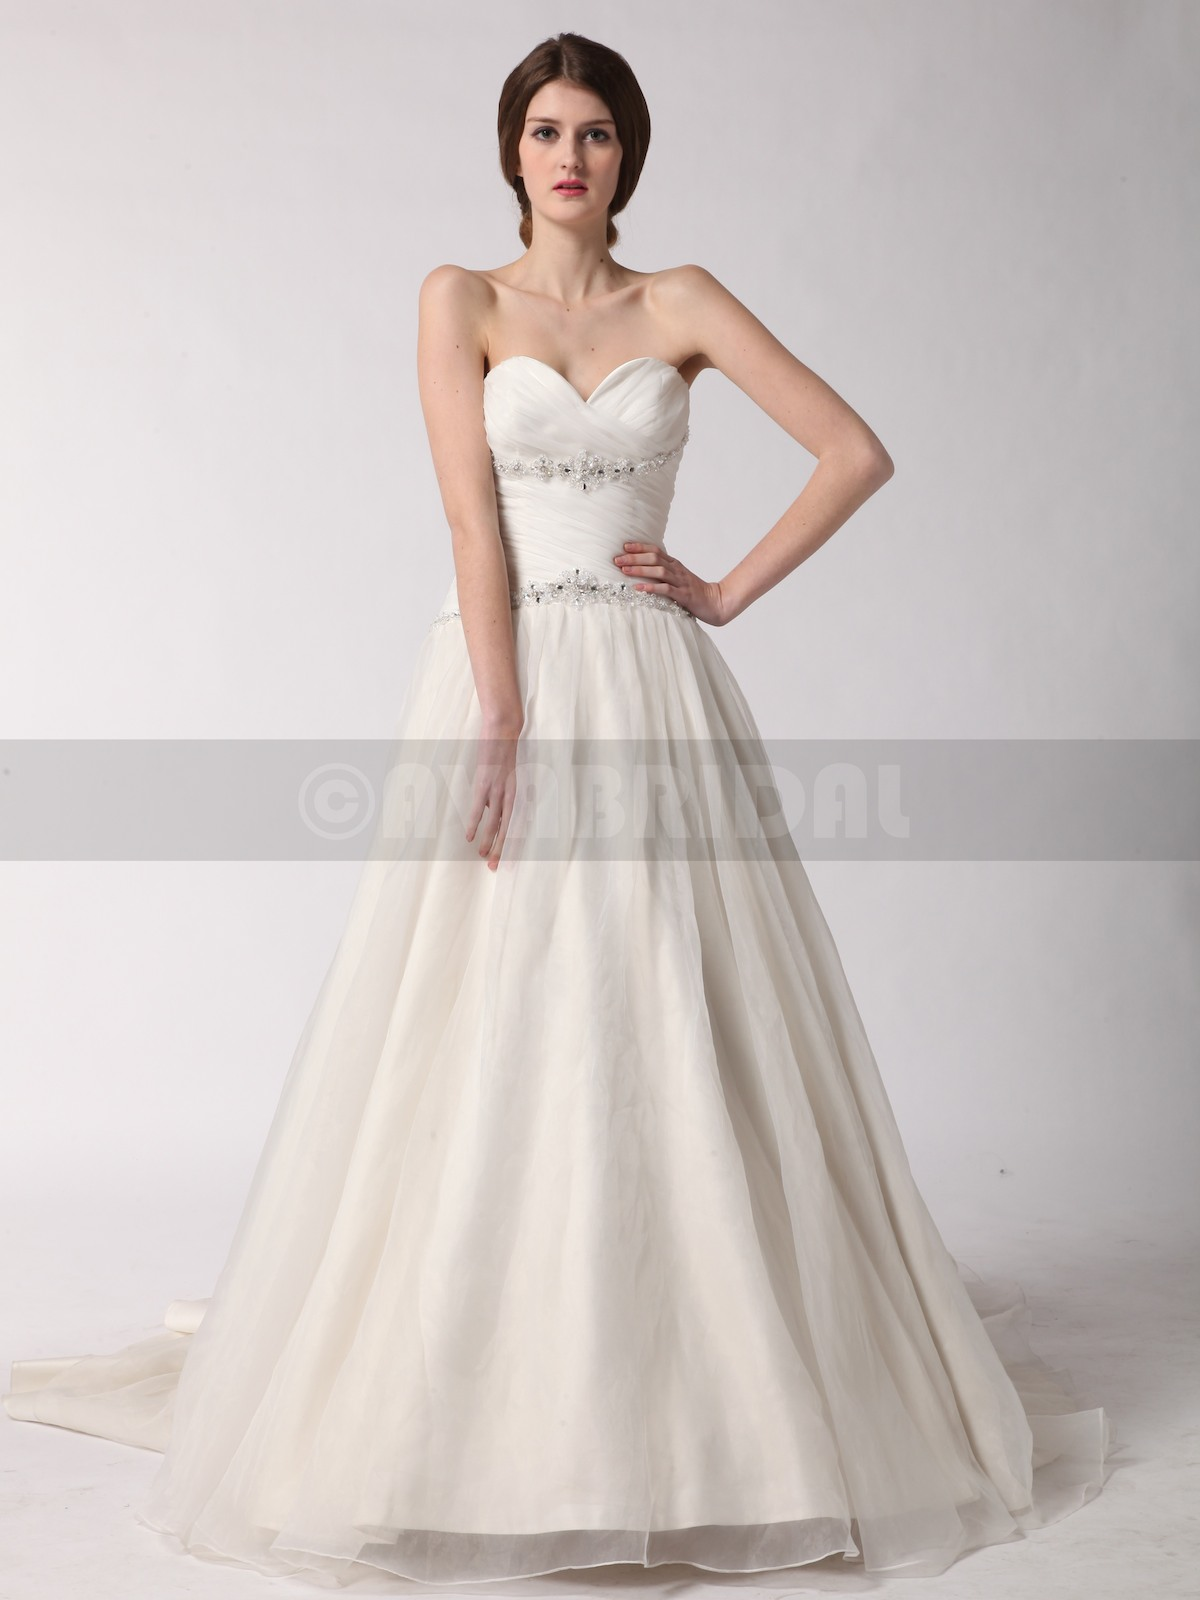 Princess Wedding Dress - Rebecca - Front